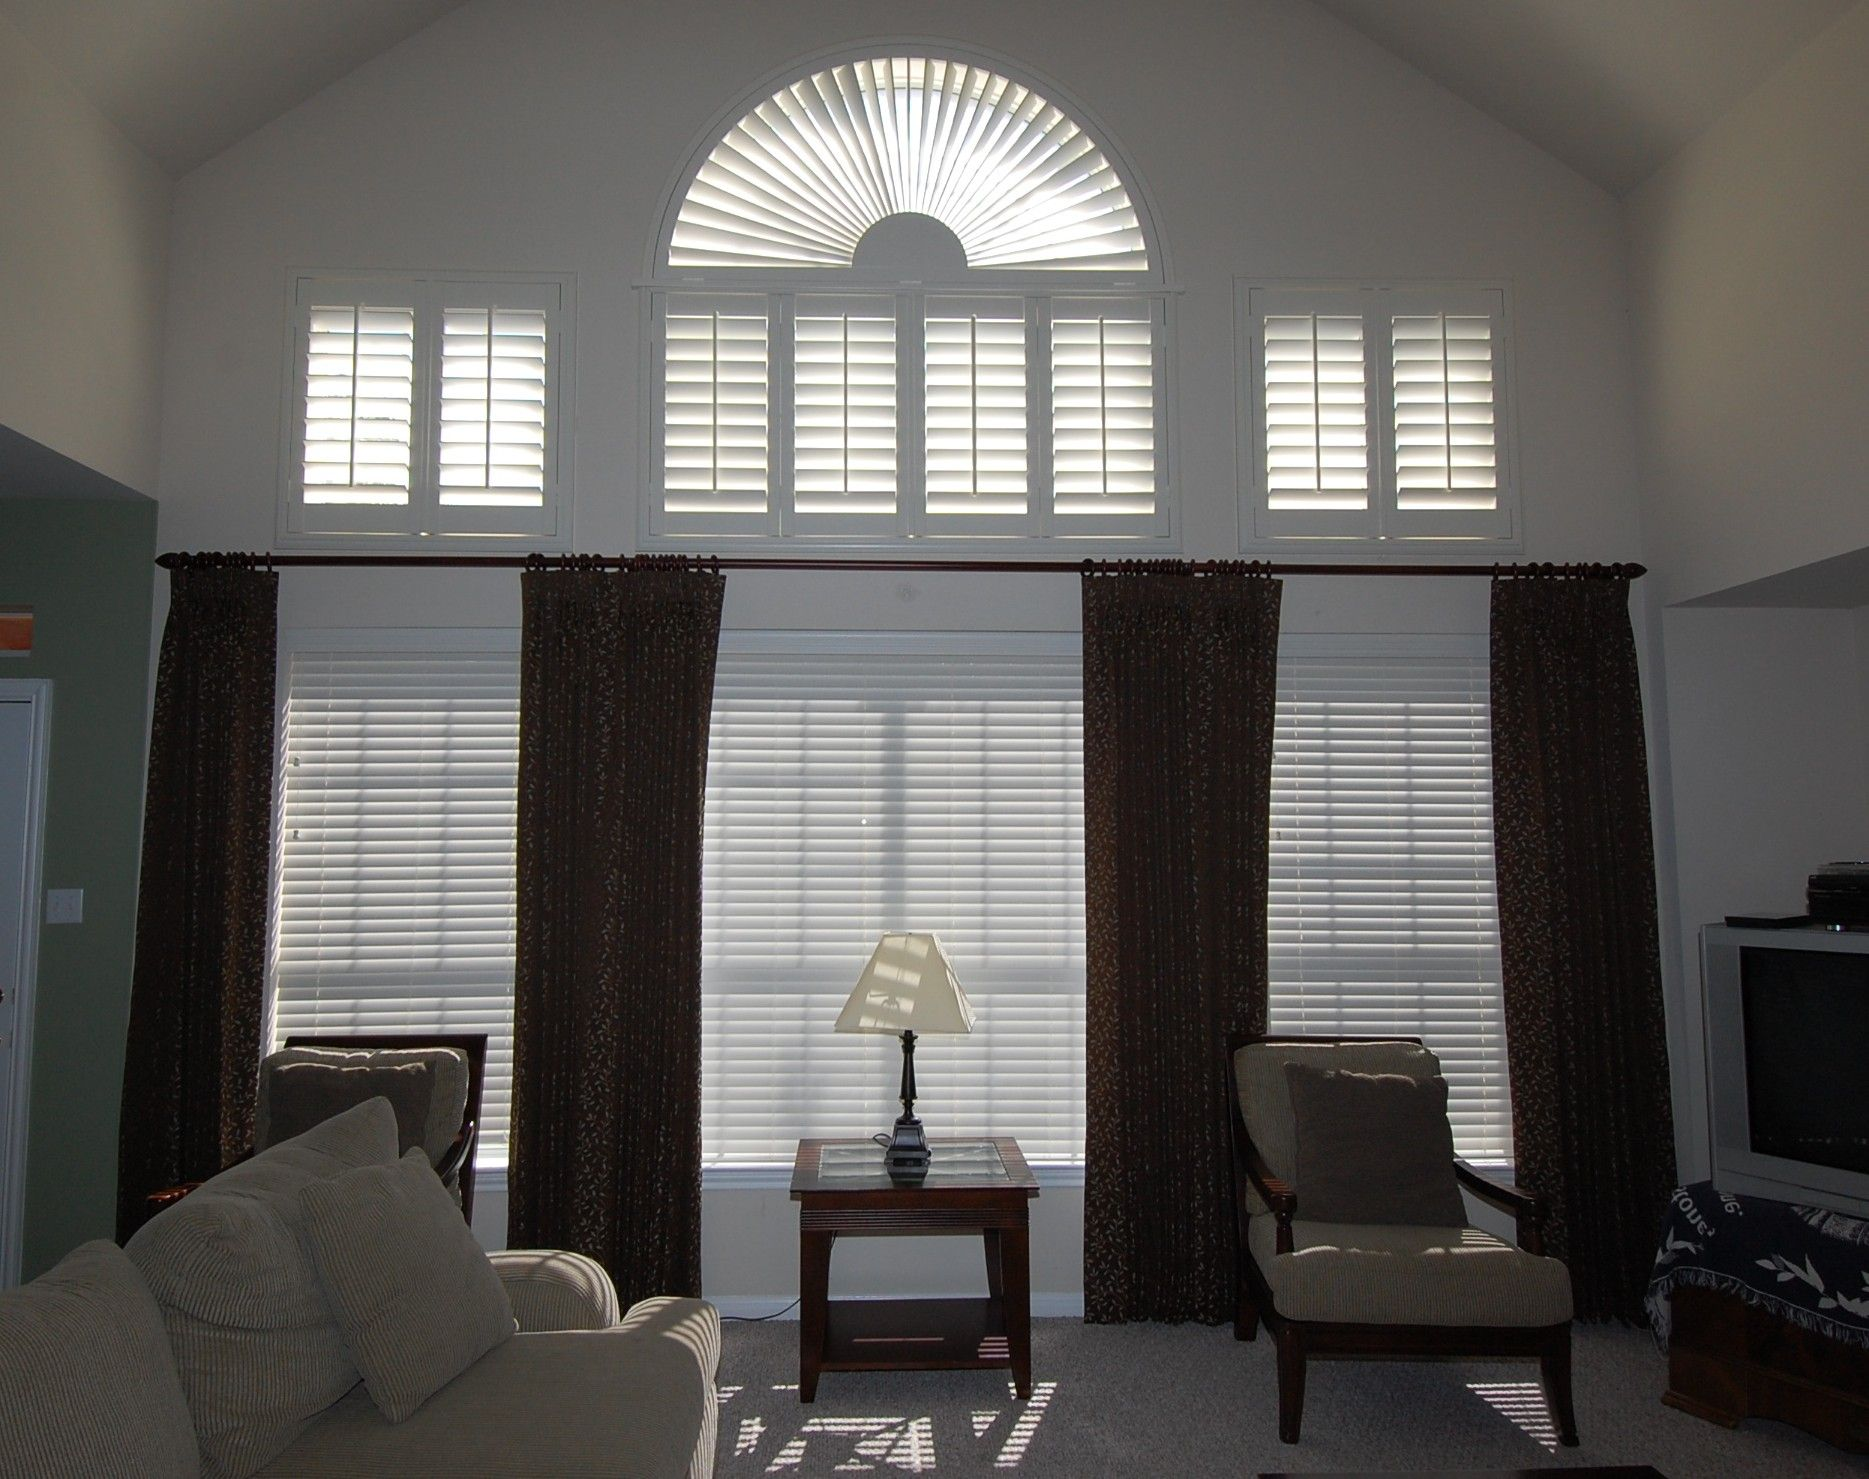 Drape ideas tall windows window with a rod placed Drapery treatments ideas